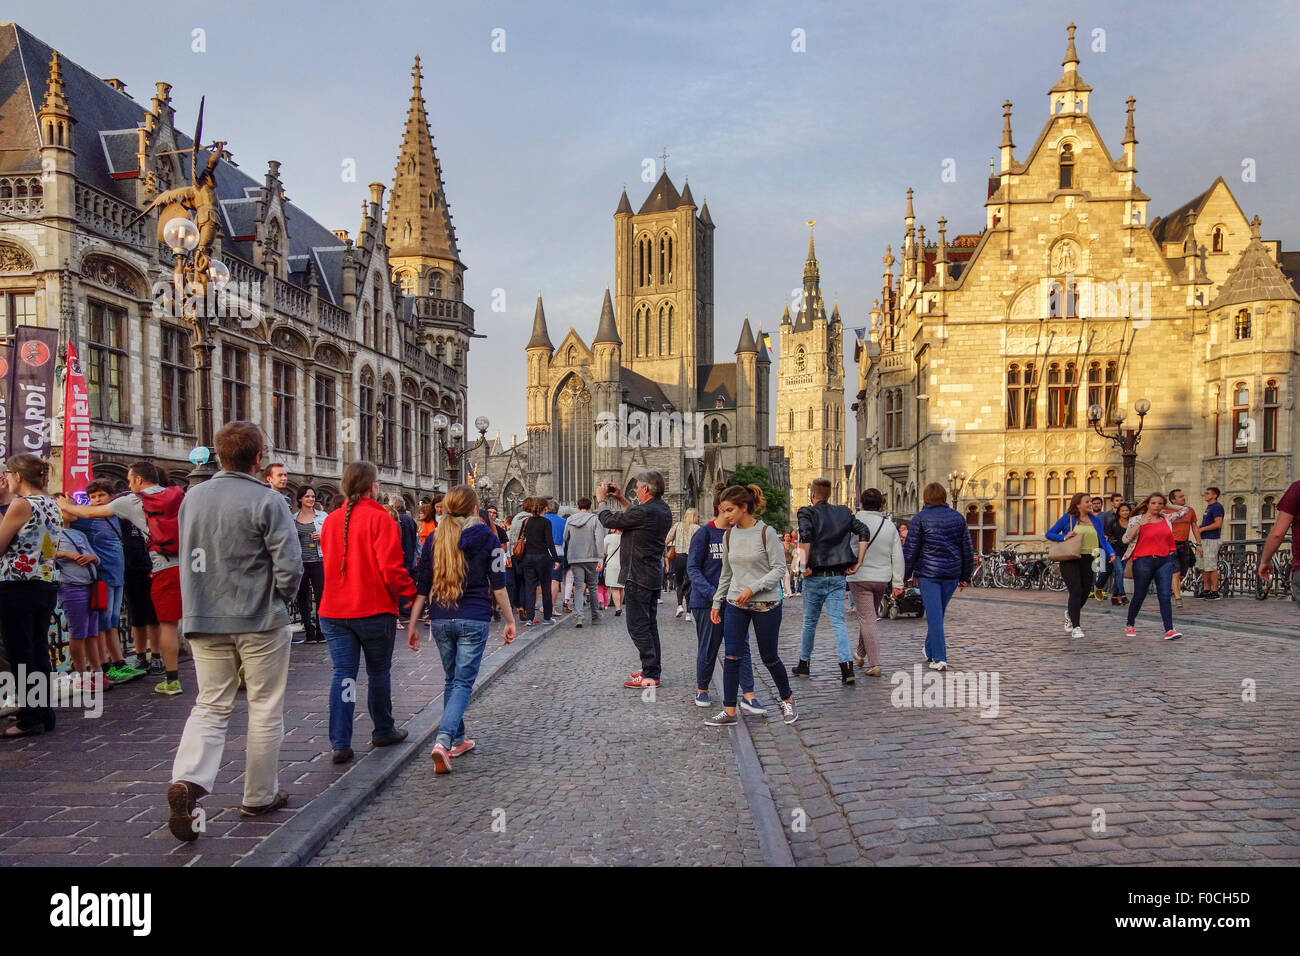 The Saint Nicholas' church / Sint-Niklaaskerk and the belfry in evening light at the city Ghent, Belgium - Stock Image